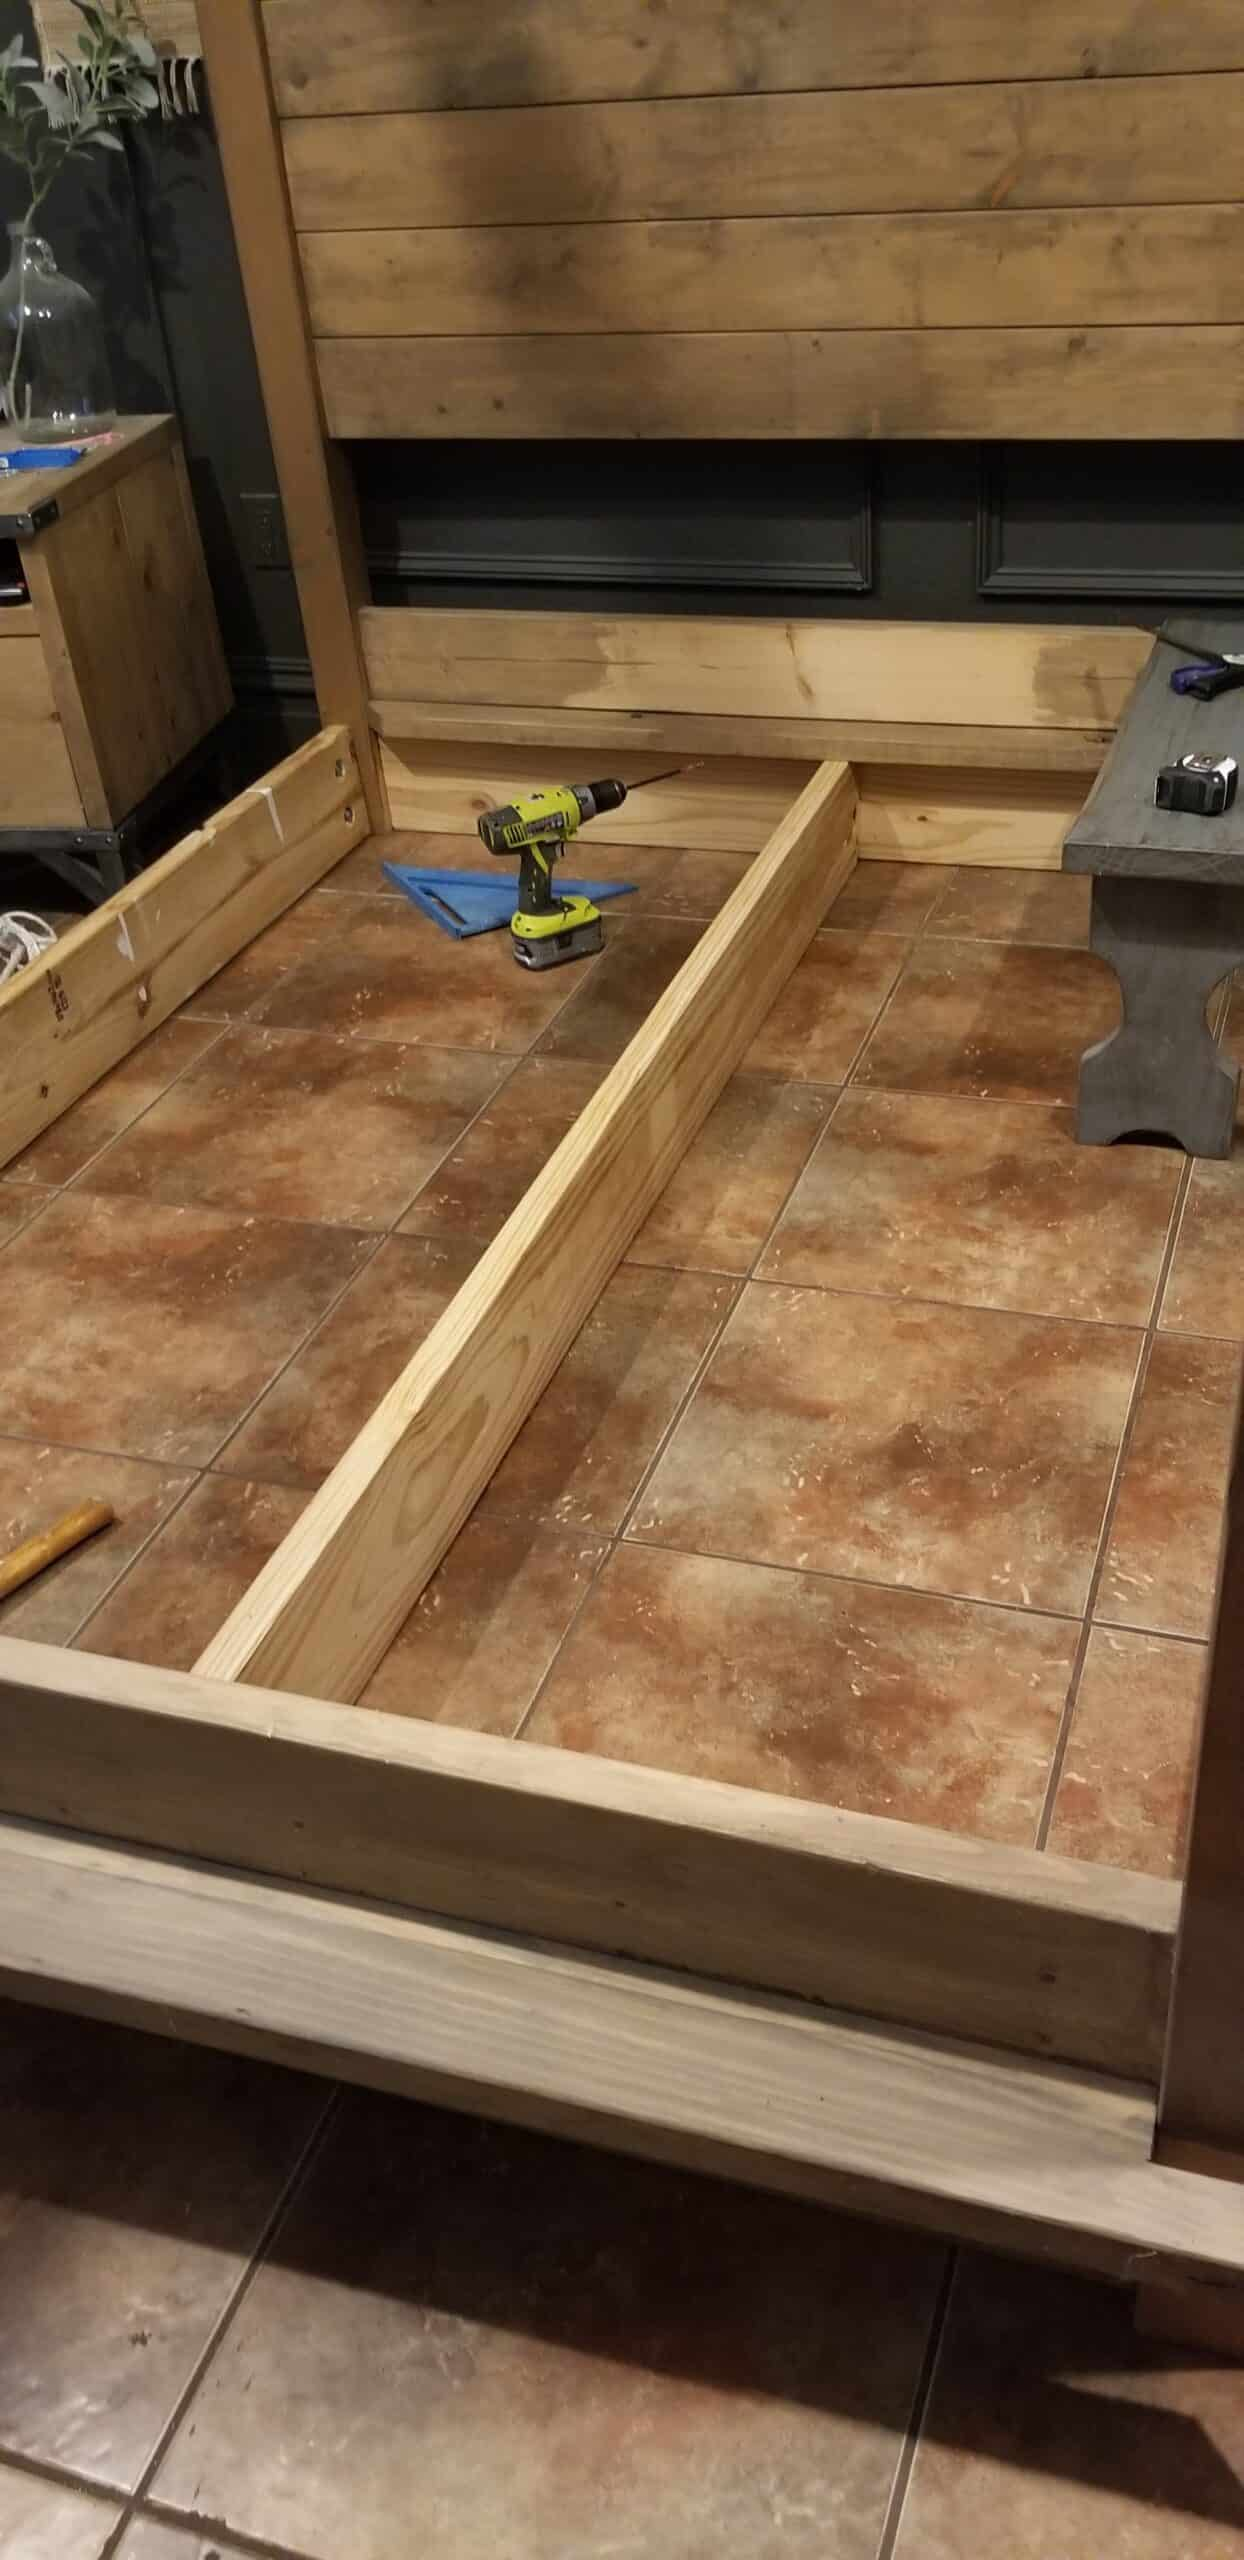 DIY Queen Bed Frame - Building the supports